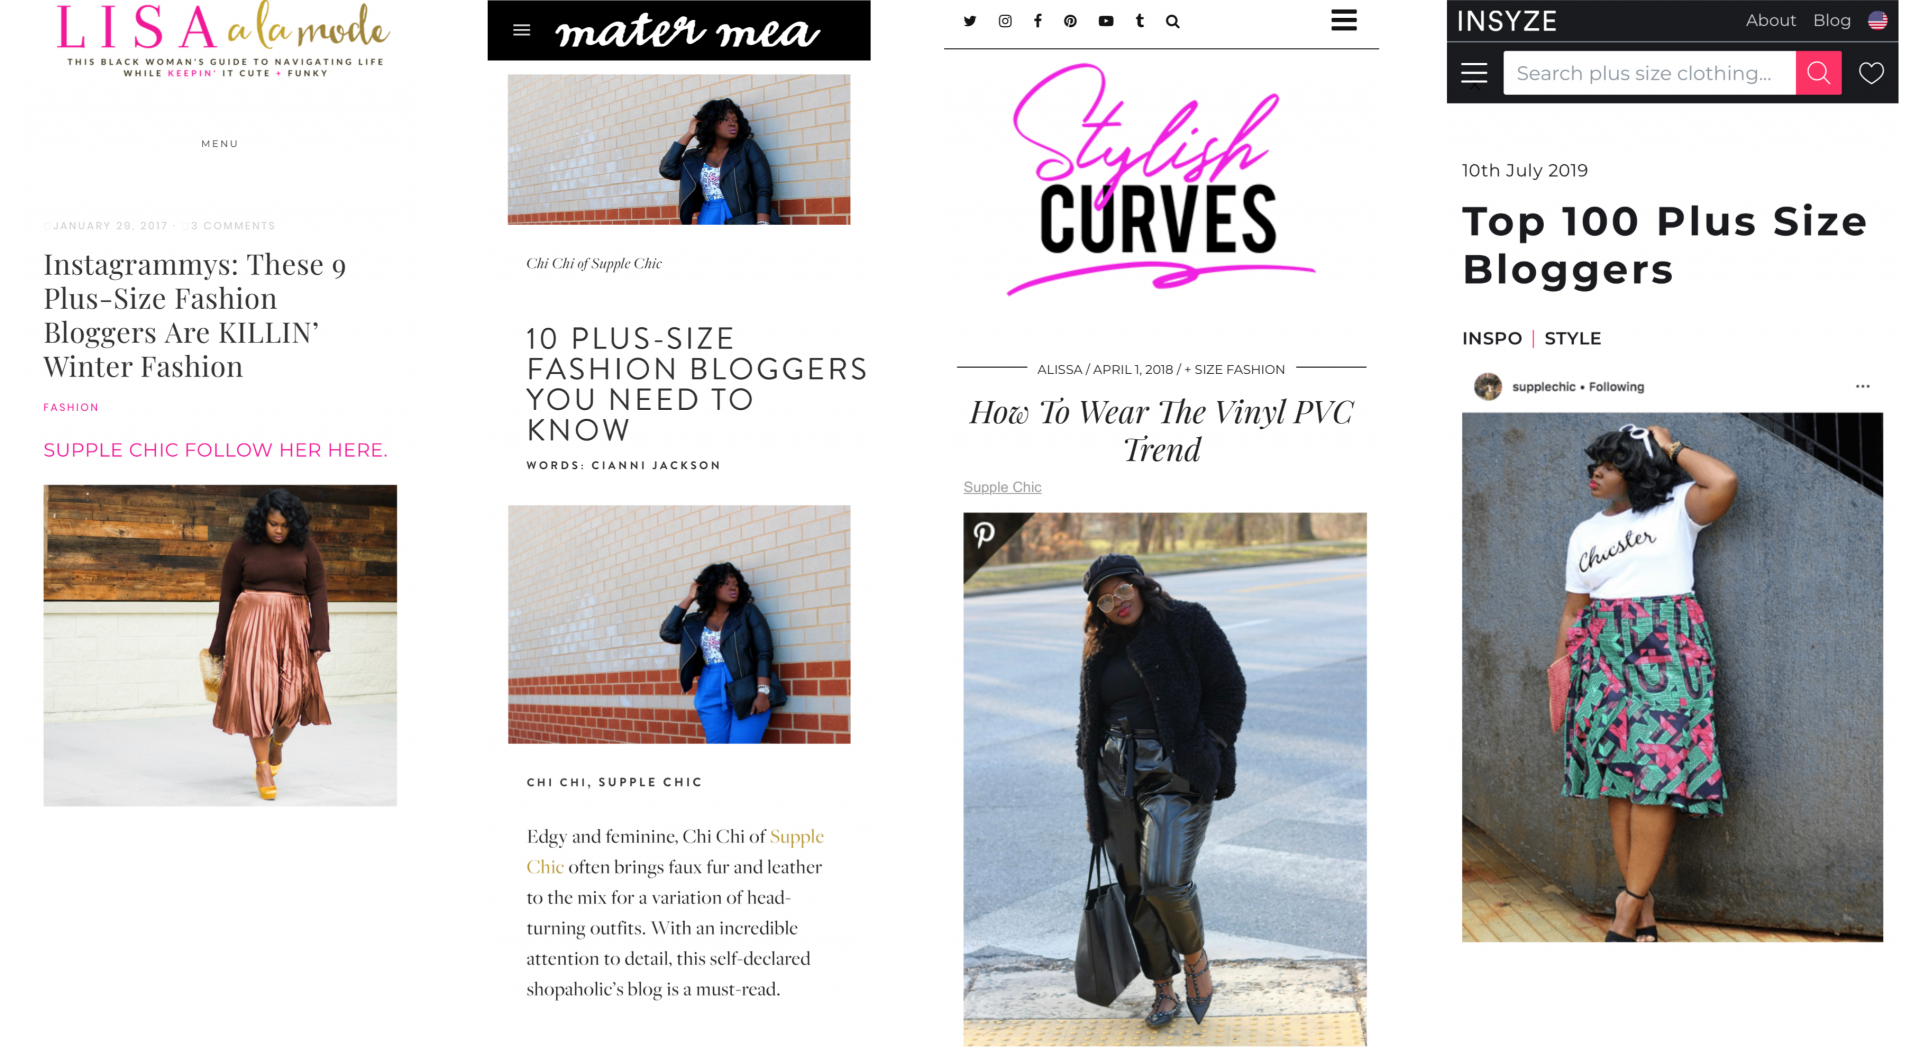 PRESS Chichi from supplechic a plus size fashion and lifestyle blog based in baltimore